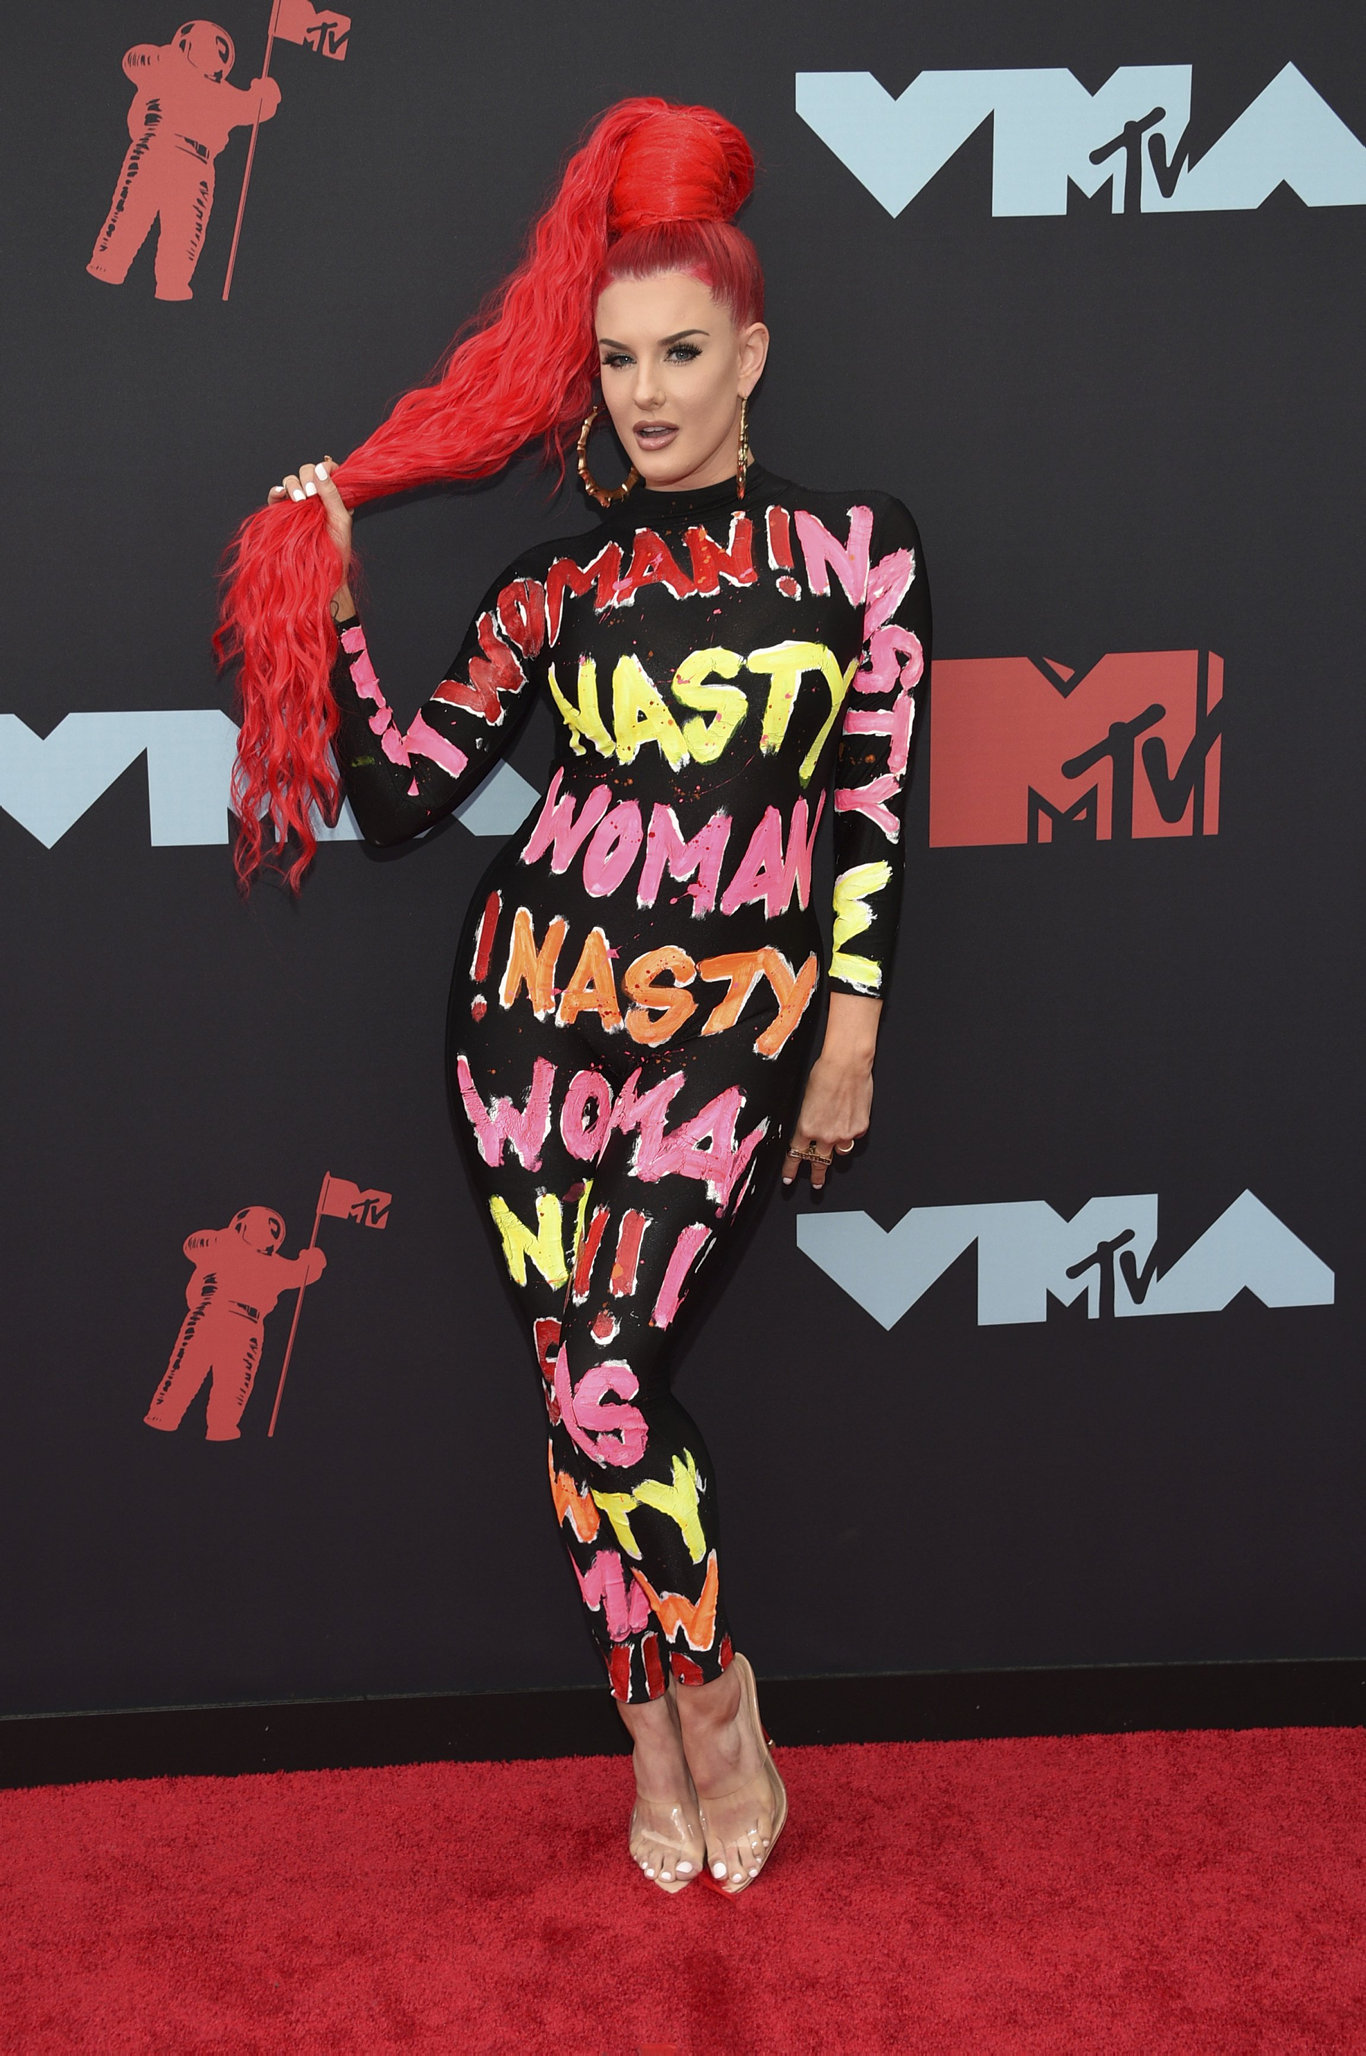 Justina Valentine arrives at the MTV Video Music Awards at the Prudential Center on Monday, Aug. 26, 2019, in Newark, N.J.